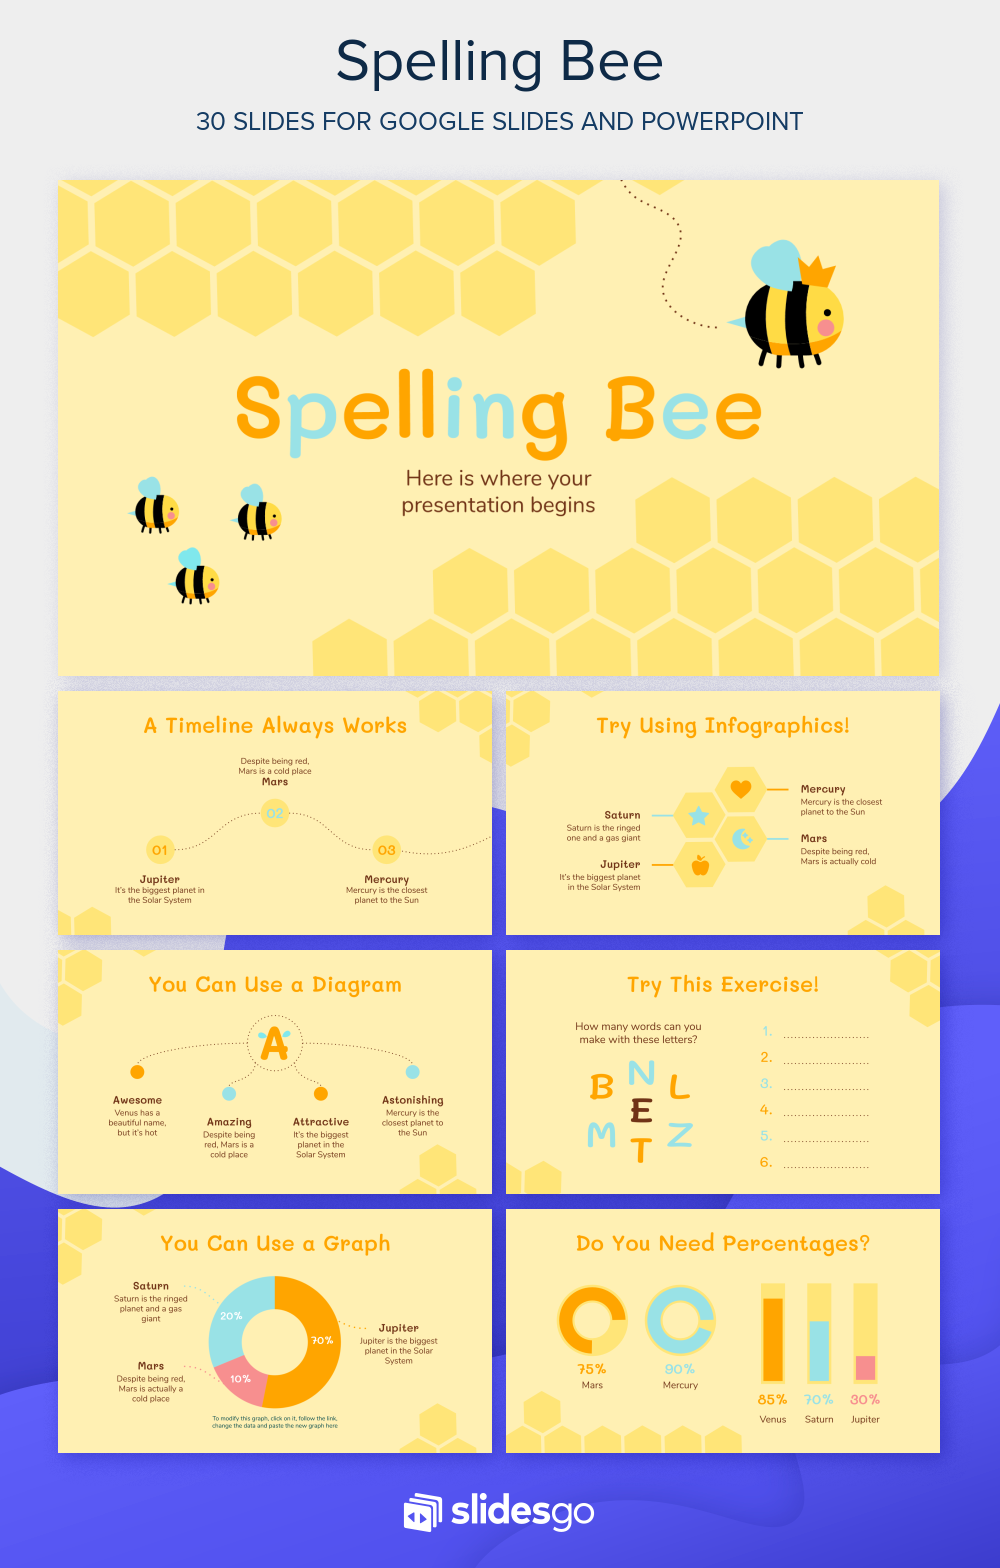 Download And Edit This Funny Spelling Bee Google Slides Theme And Ppt Template For Your Competitio Spelling Bee Presentation Template Free Google Slides Themes